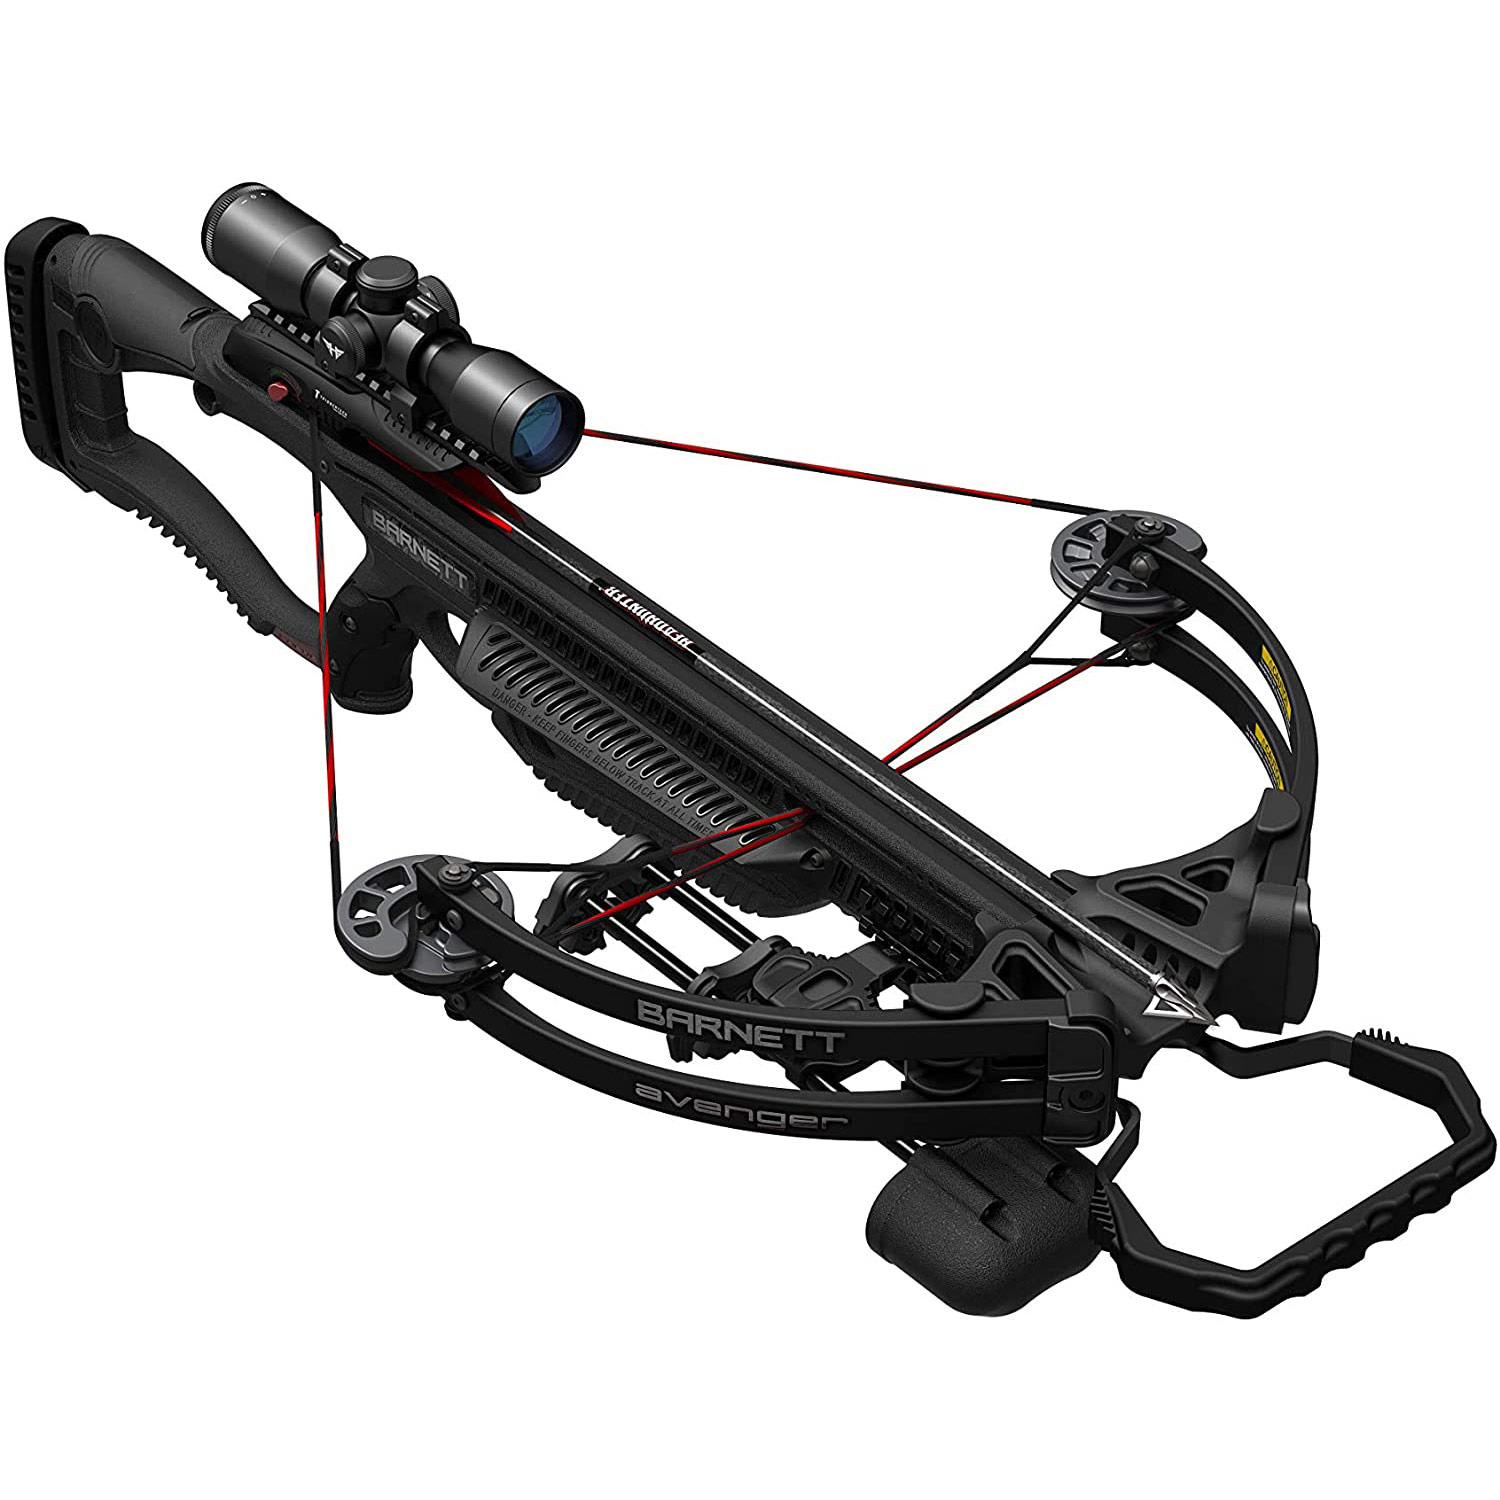 Barnett Avenger Recruit Crossbow Review 2020